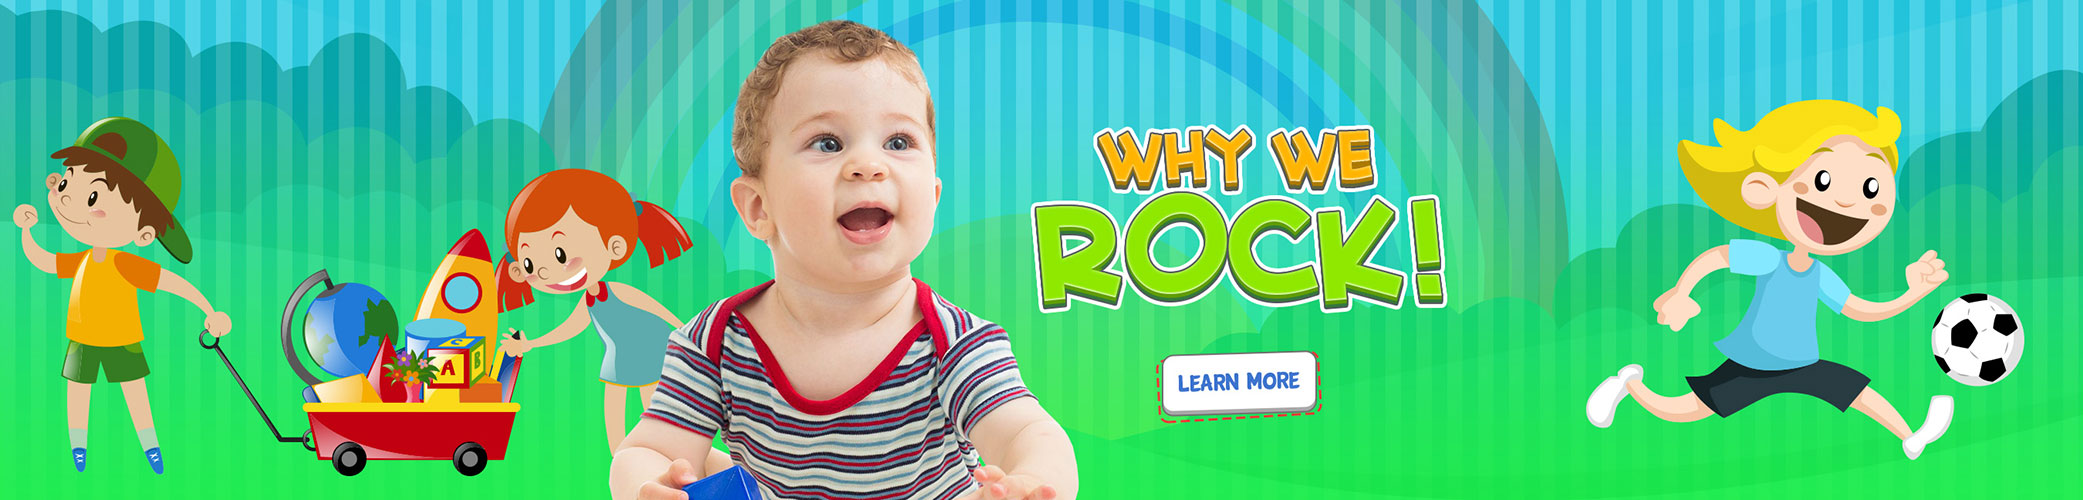 Kids Gym Indoor Playground | We Rock The Spectrum Long Beach, CA